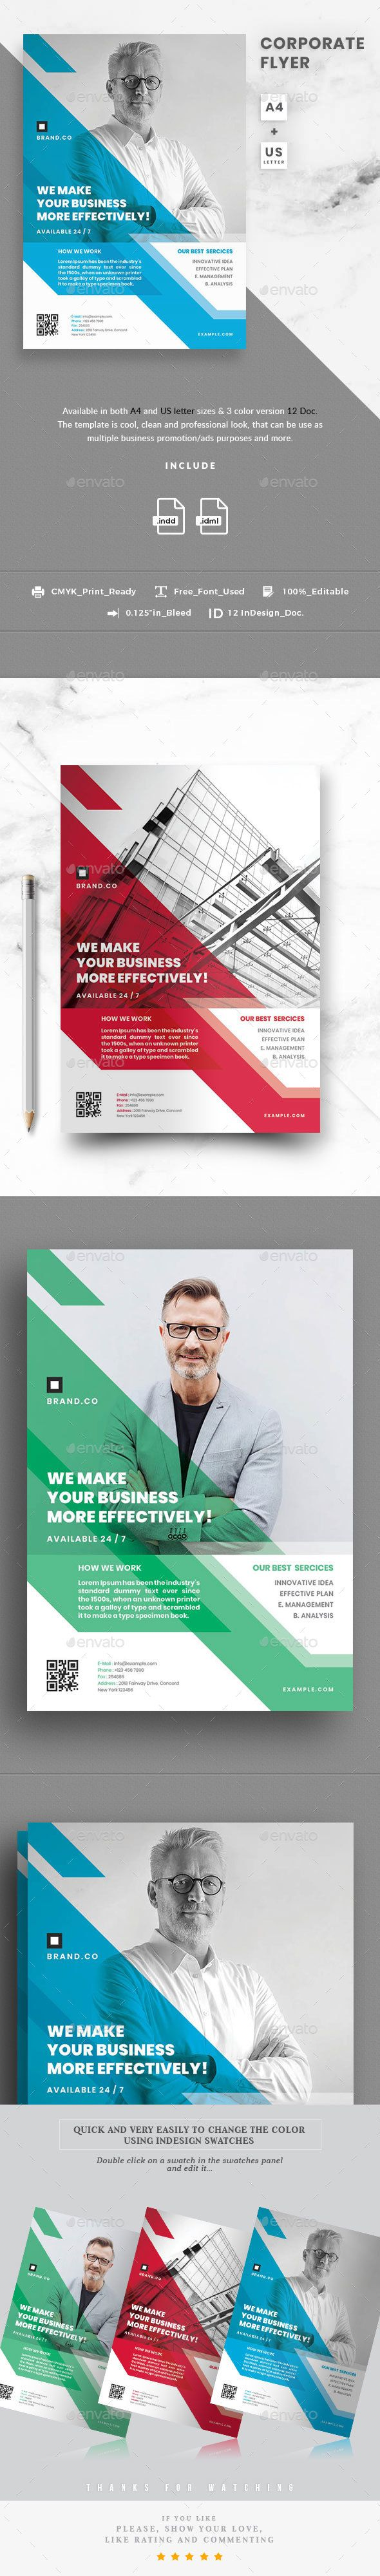 corporate flyer template indesign indd very easy to customize